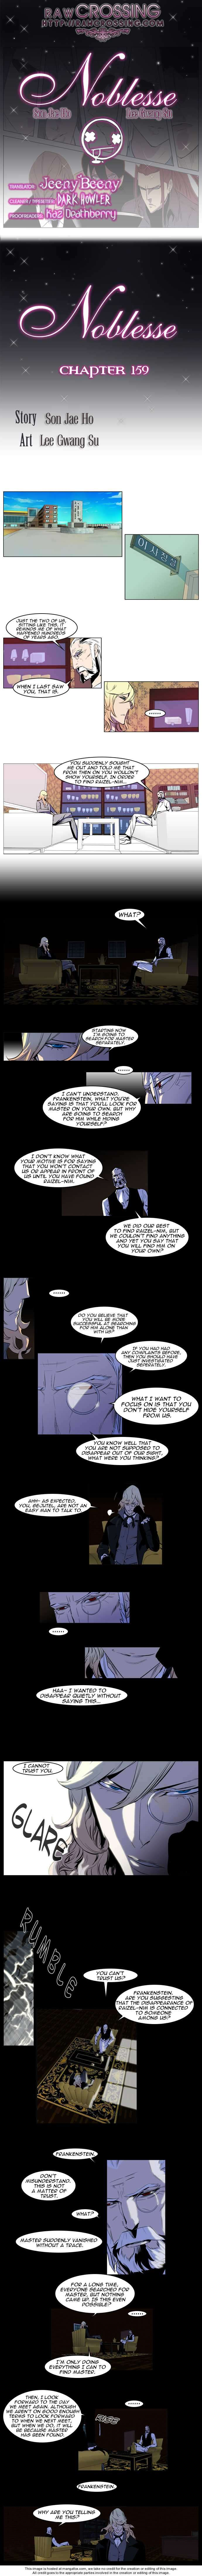 Noblesse 159 Page 1